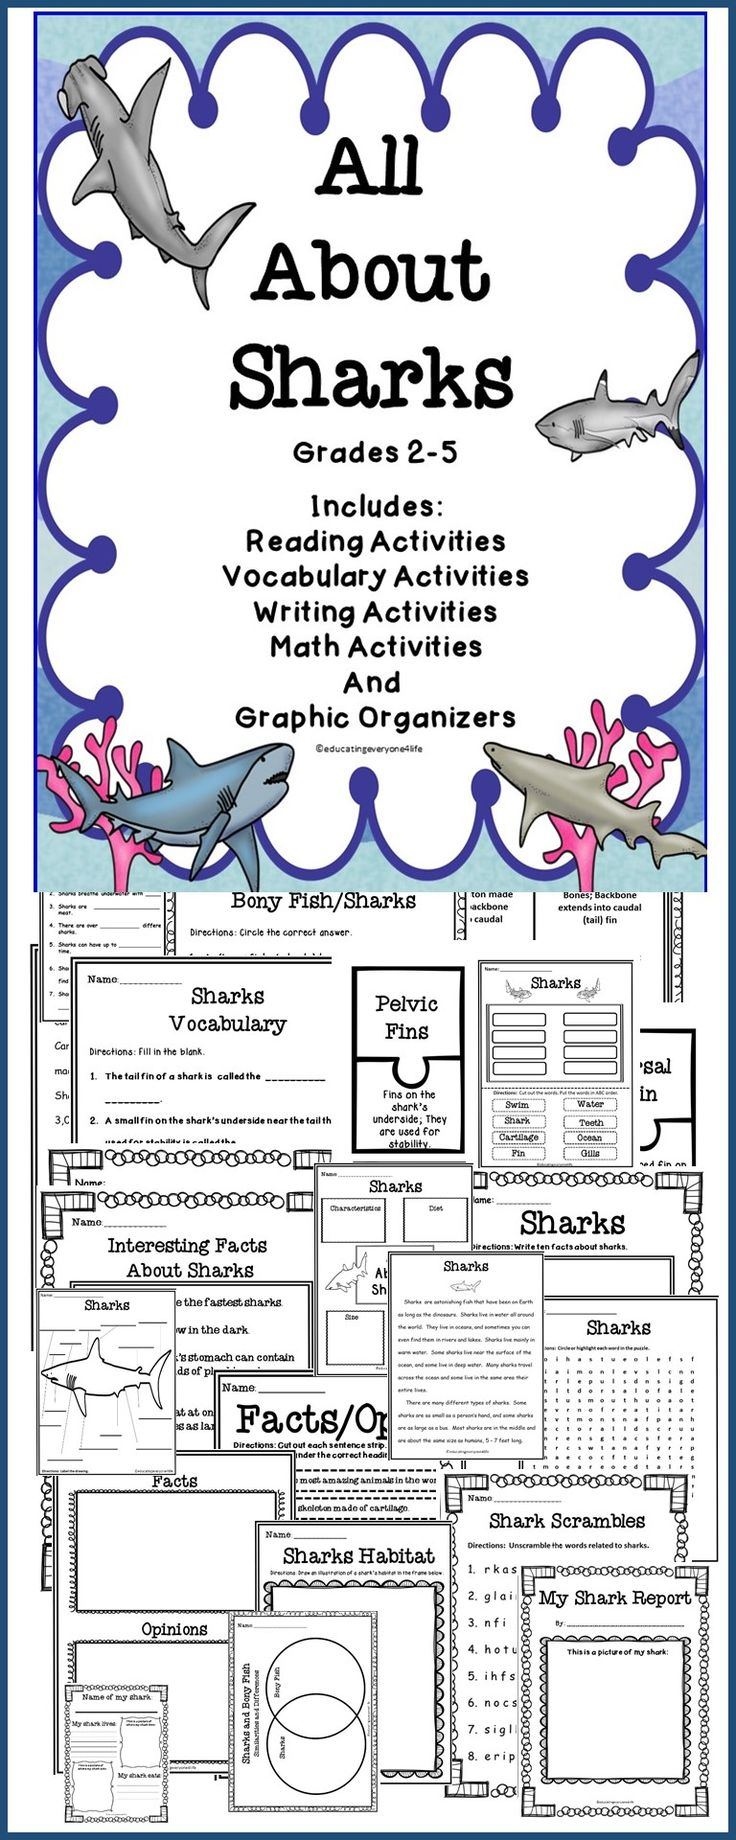 005 Essay Example Shark All About Sharks Reading Wonderful Essayshark Sign Up Introduction Topics Full